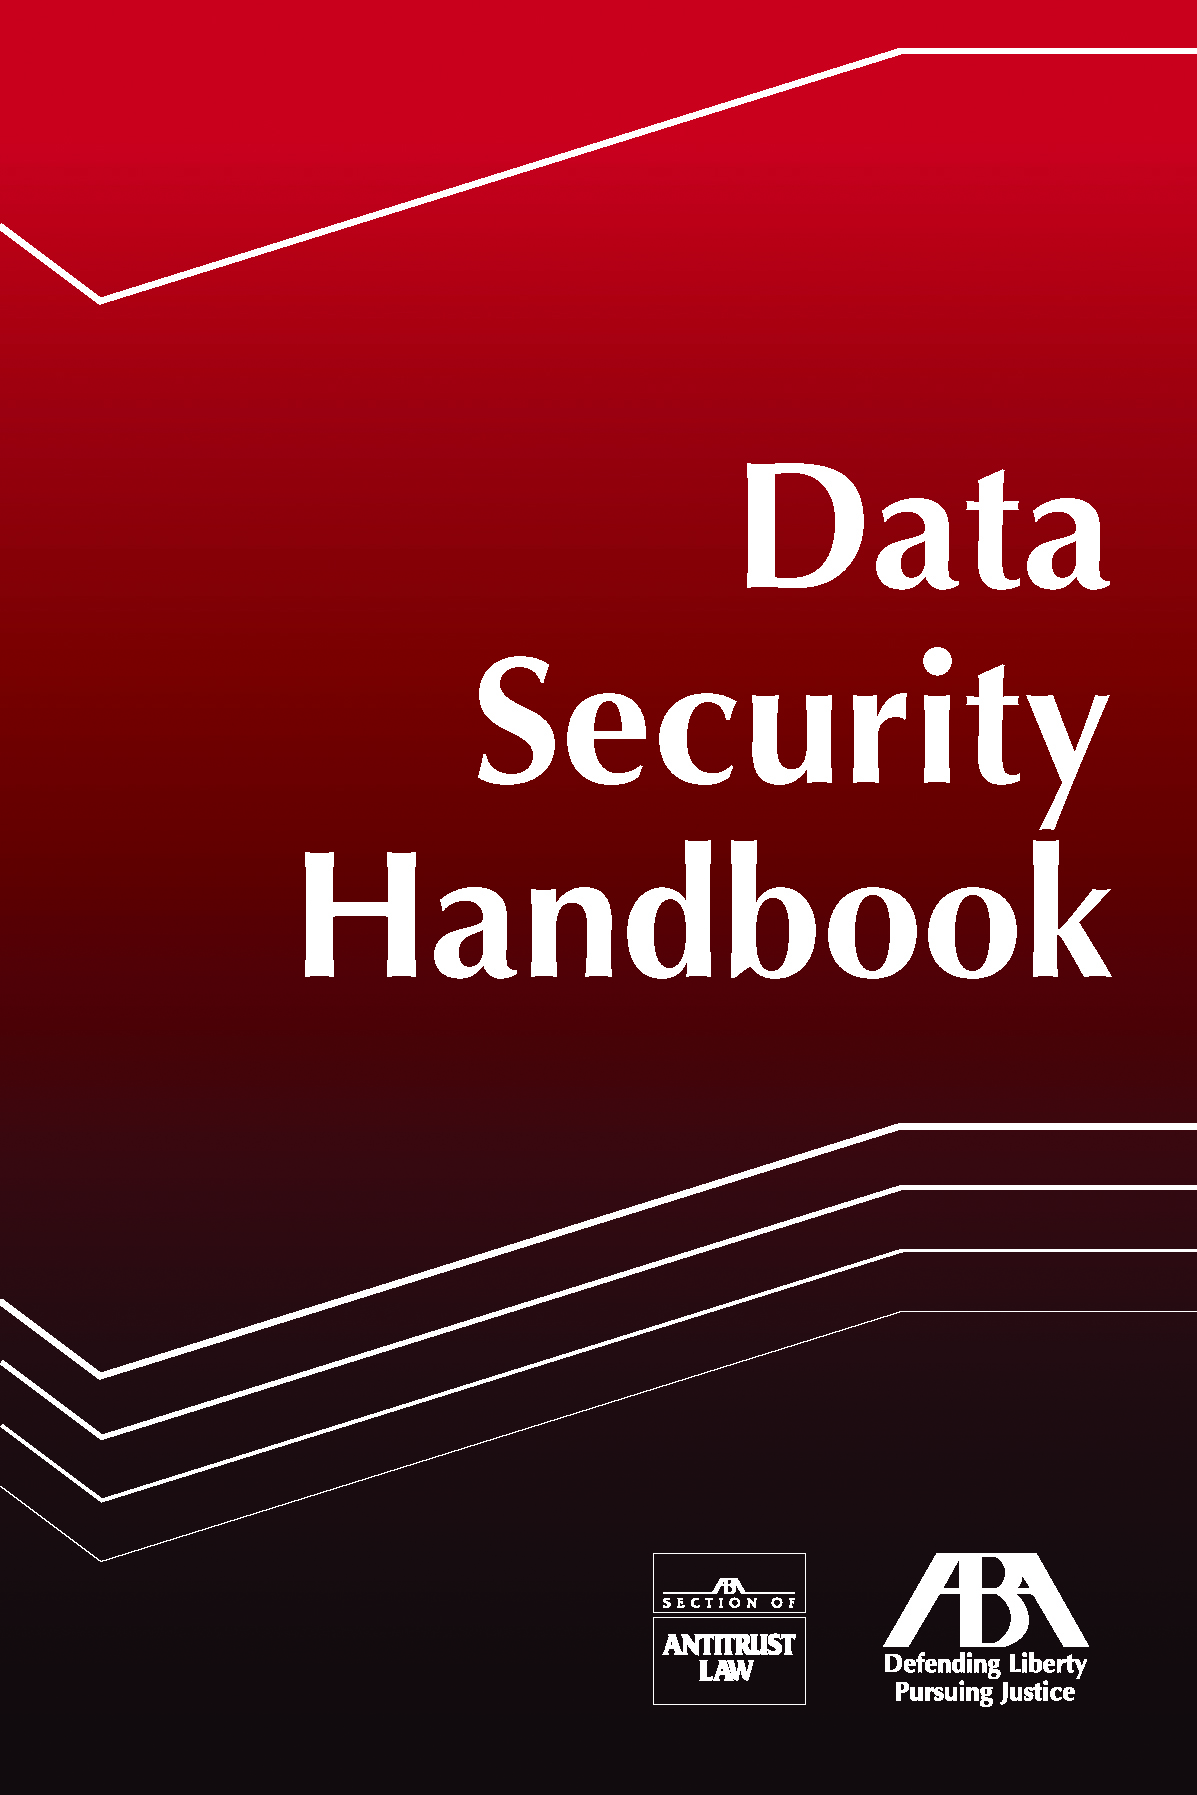 Data Security Handbook